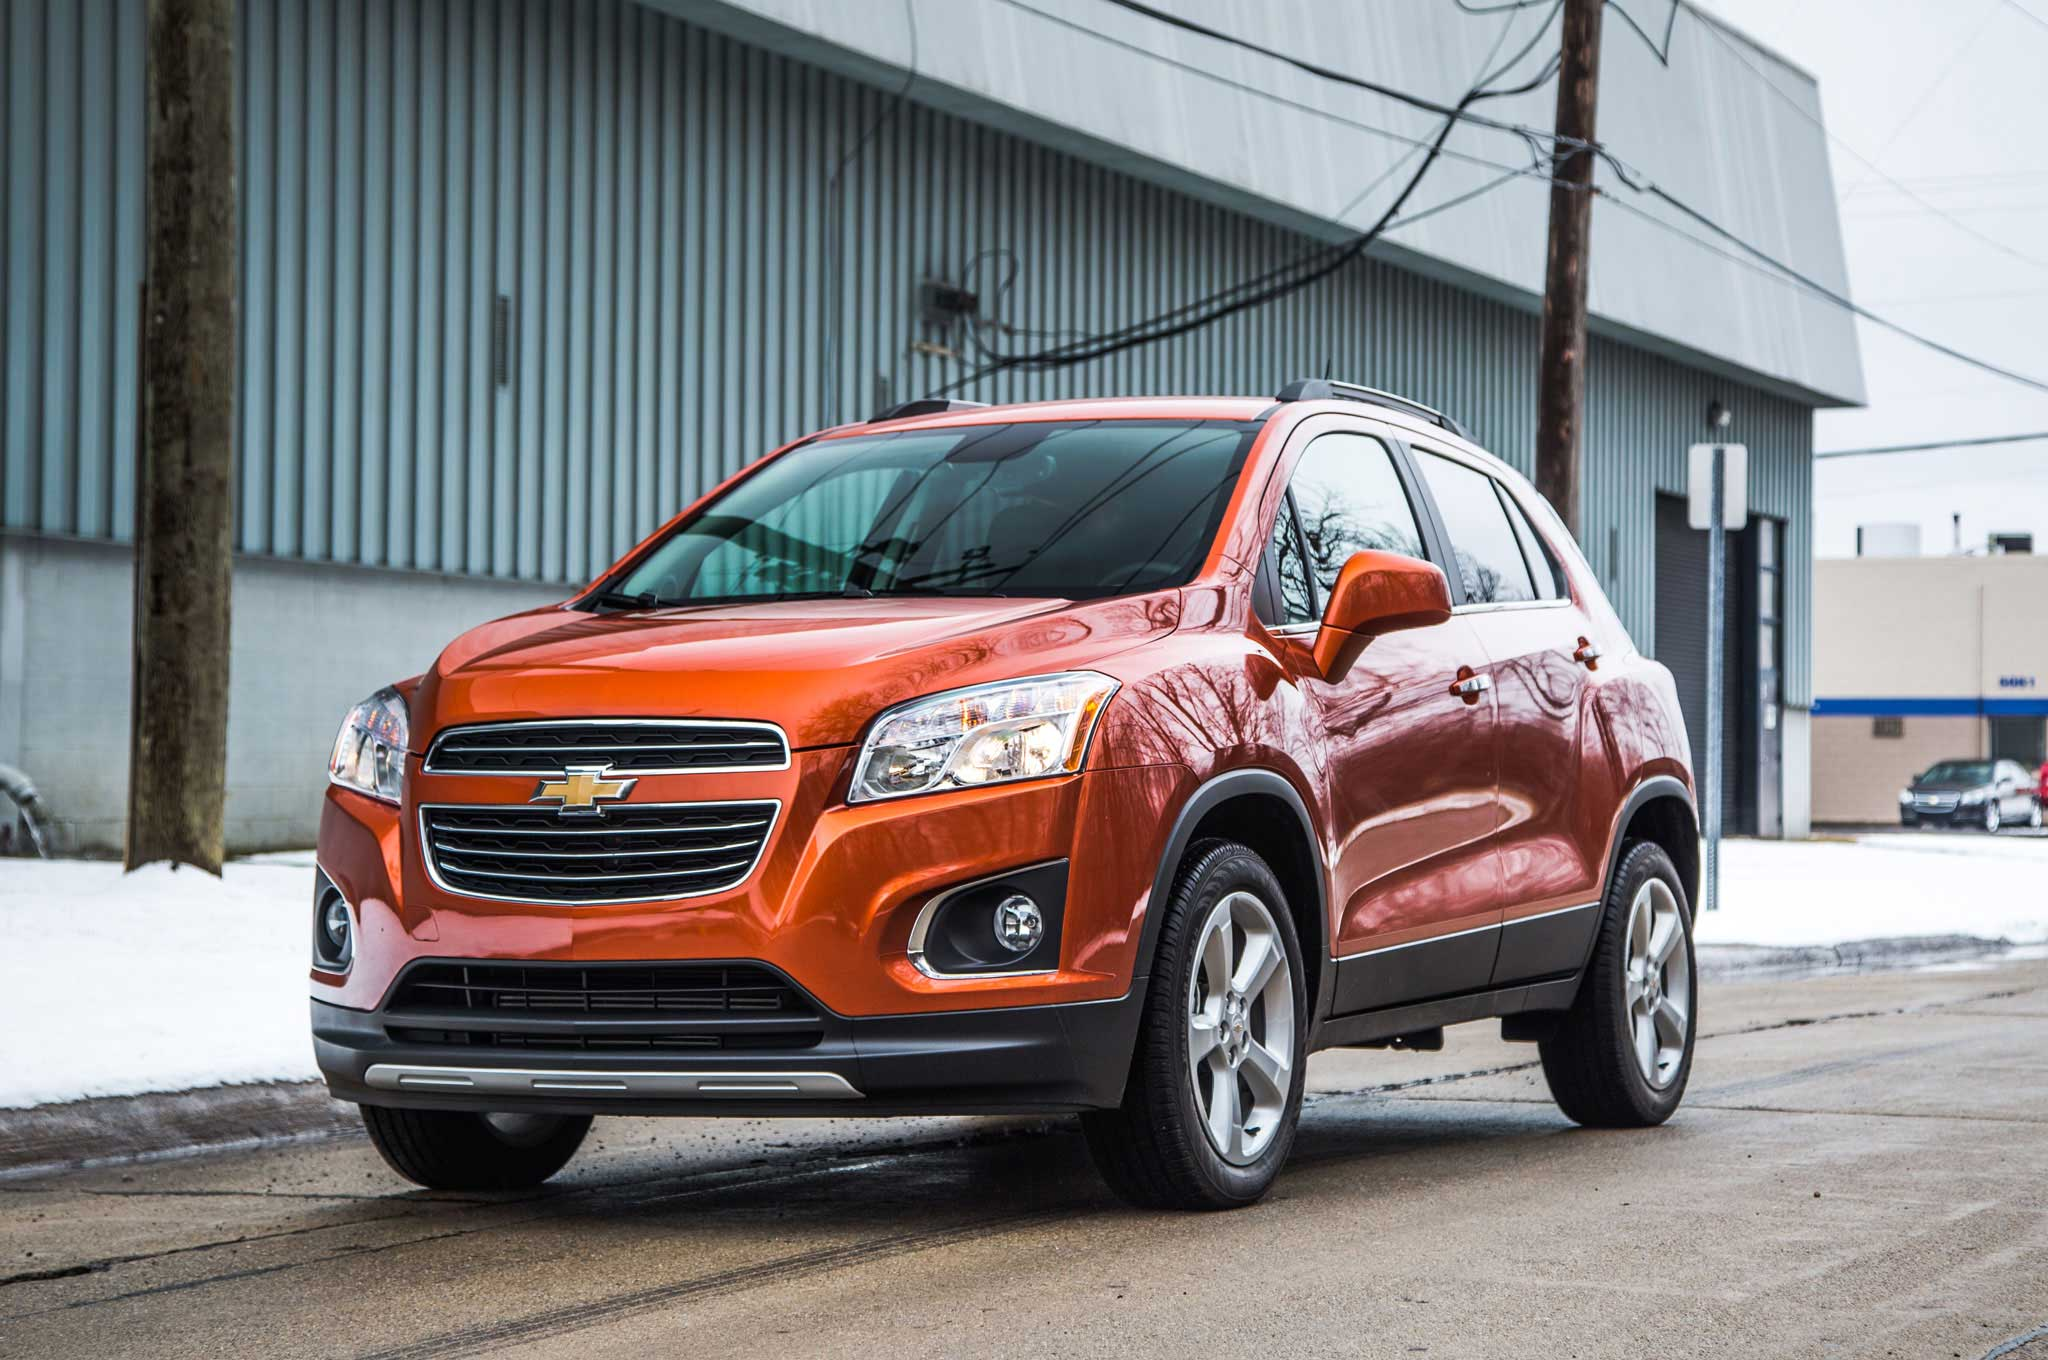 2015-chevrolet-trax-driver-side-front-view